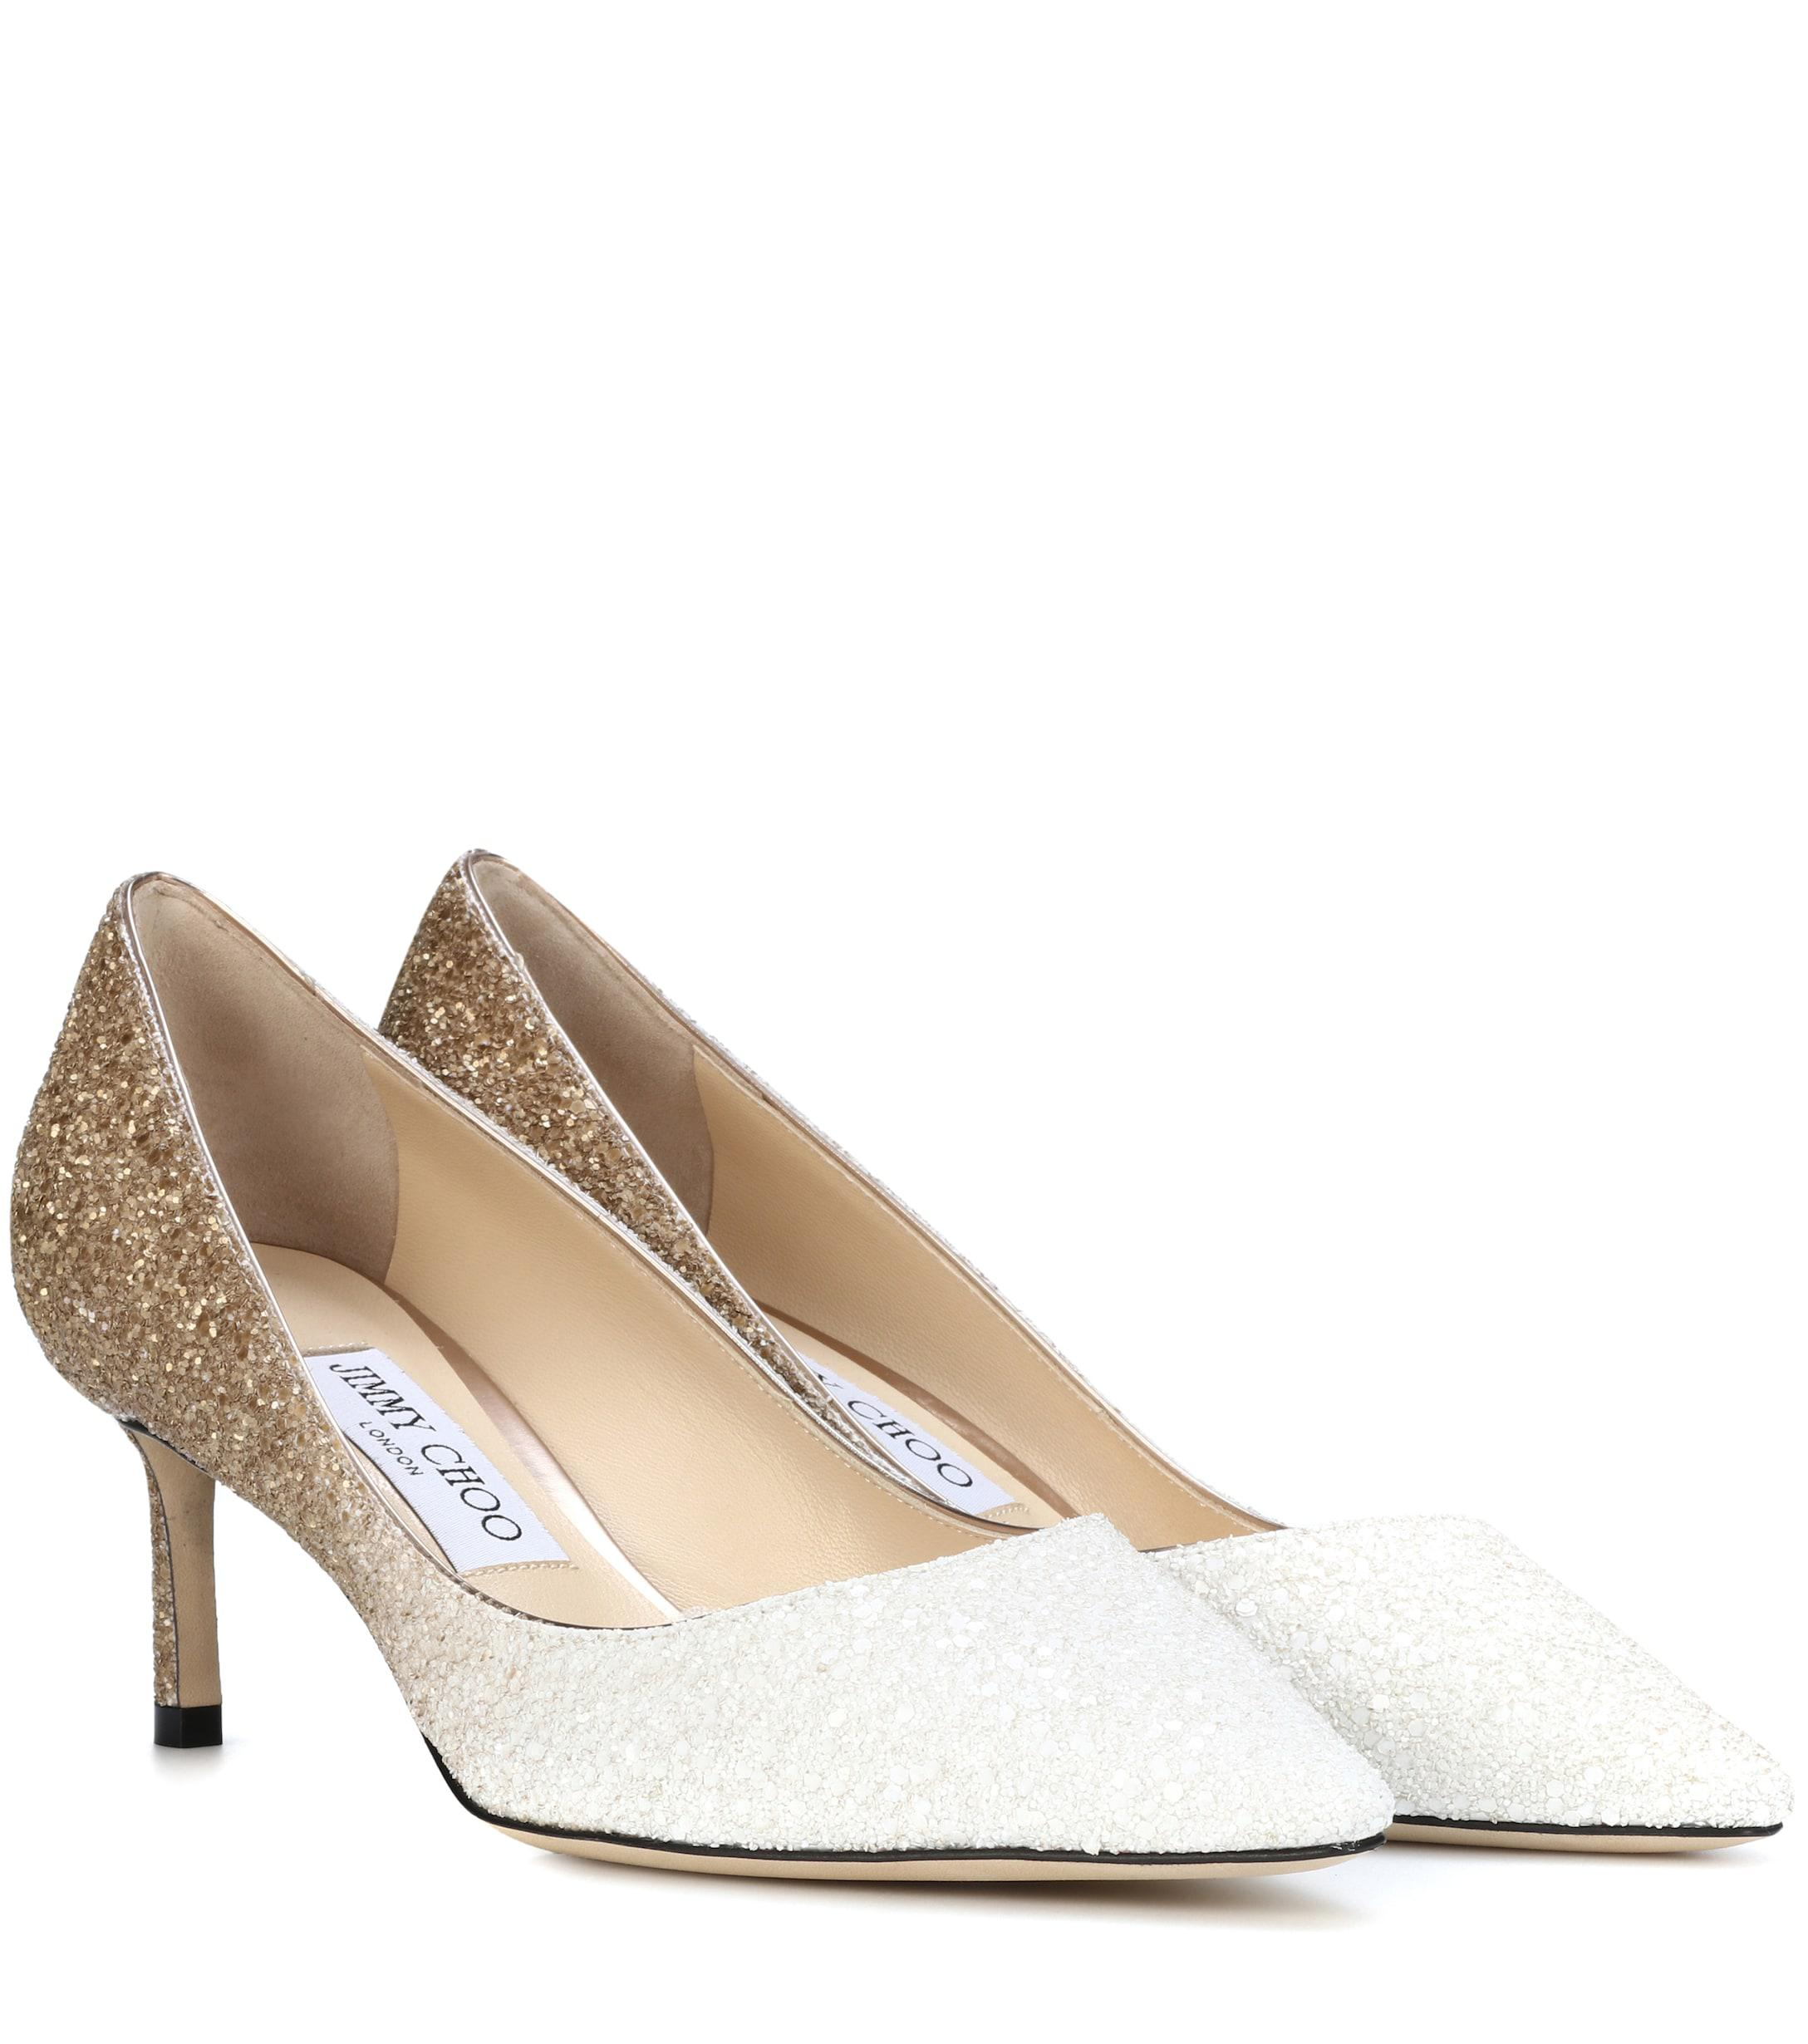 7c6bdb80827d Jimmy Choo. Women s Romy 60 Glitter Pumps